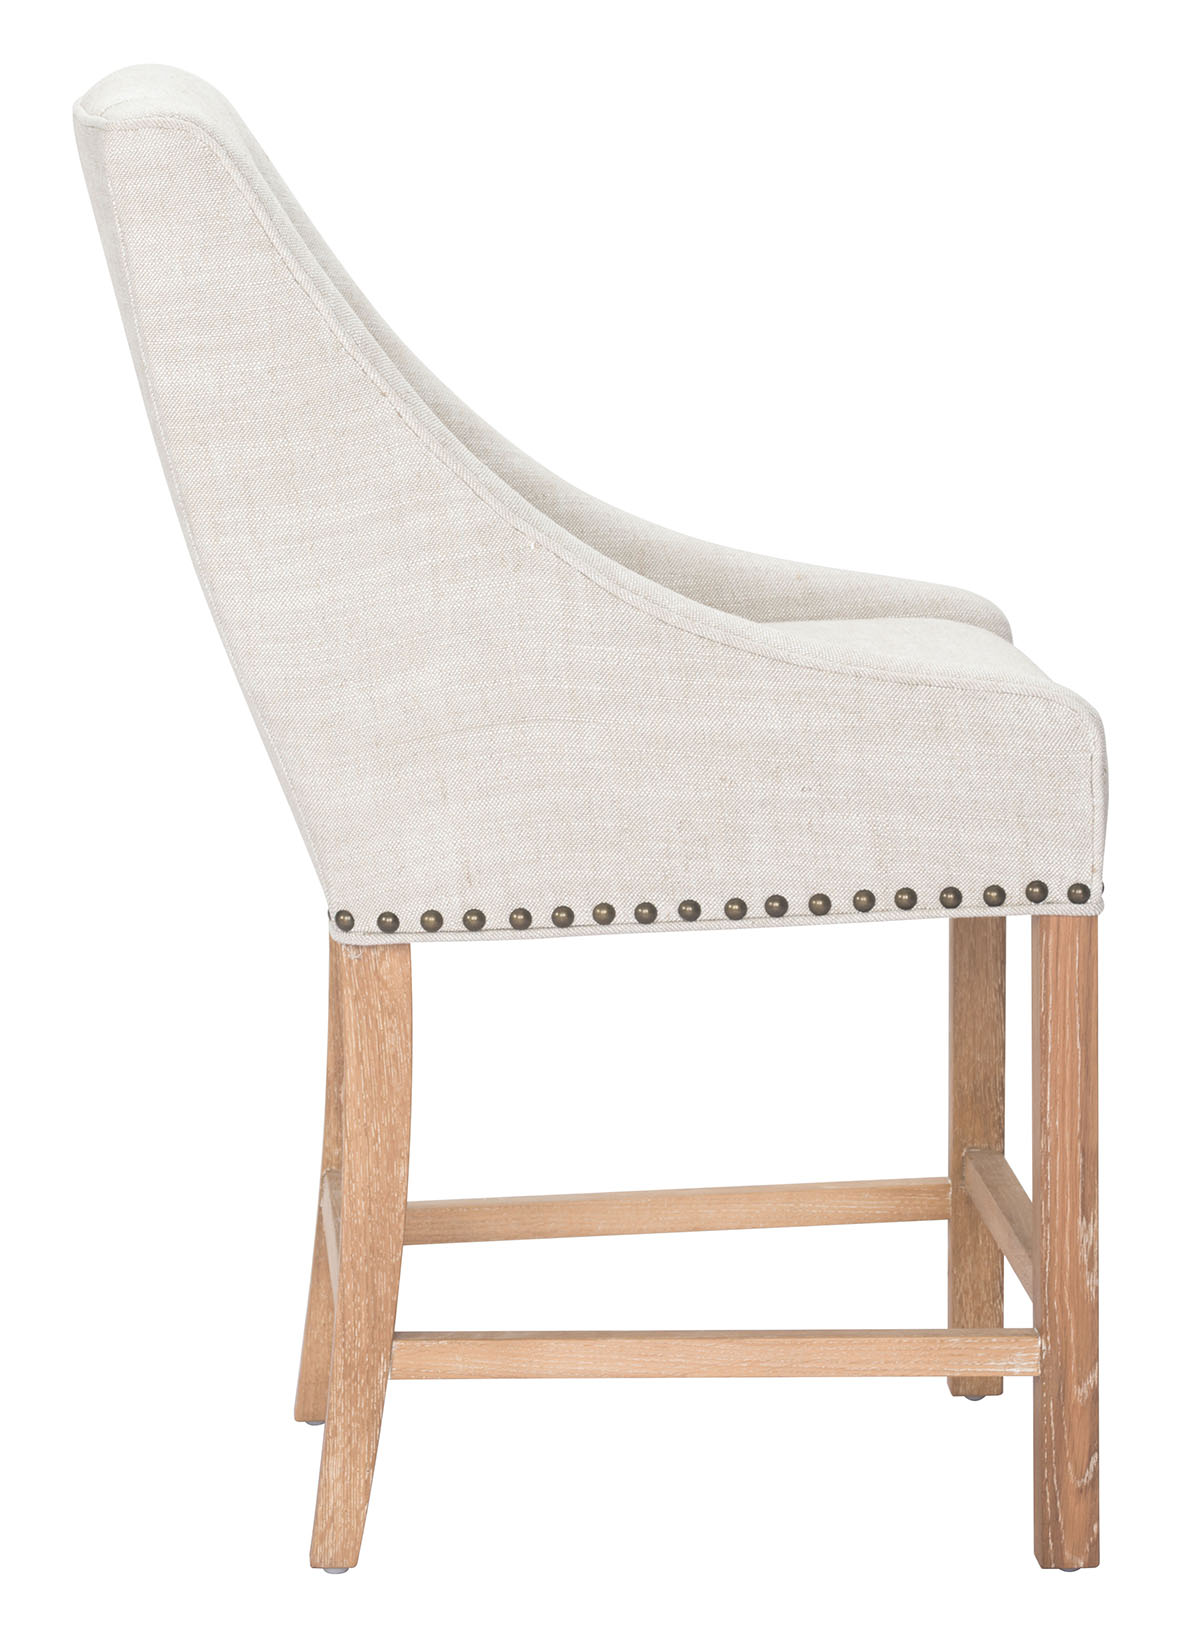 zuo-indio-counter-chair-beige.jpg